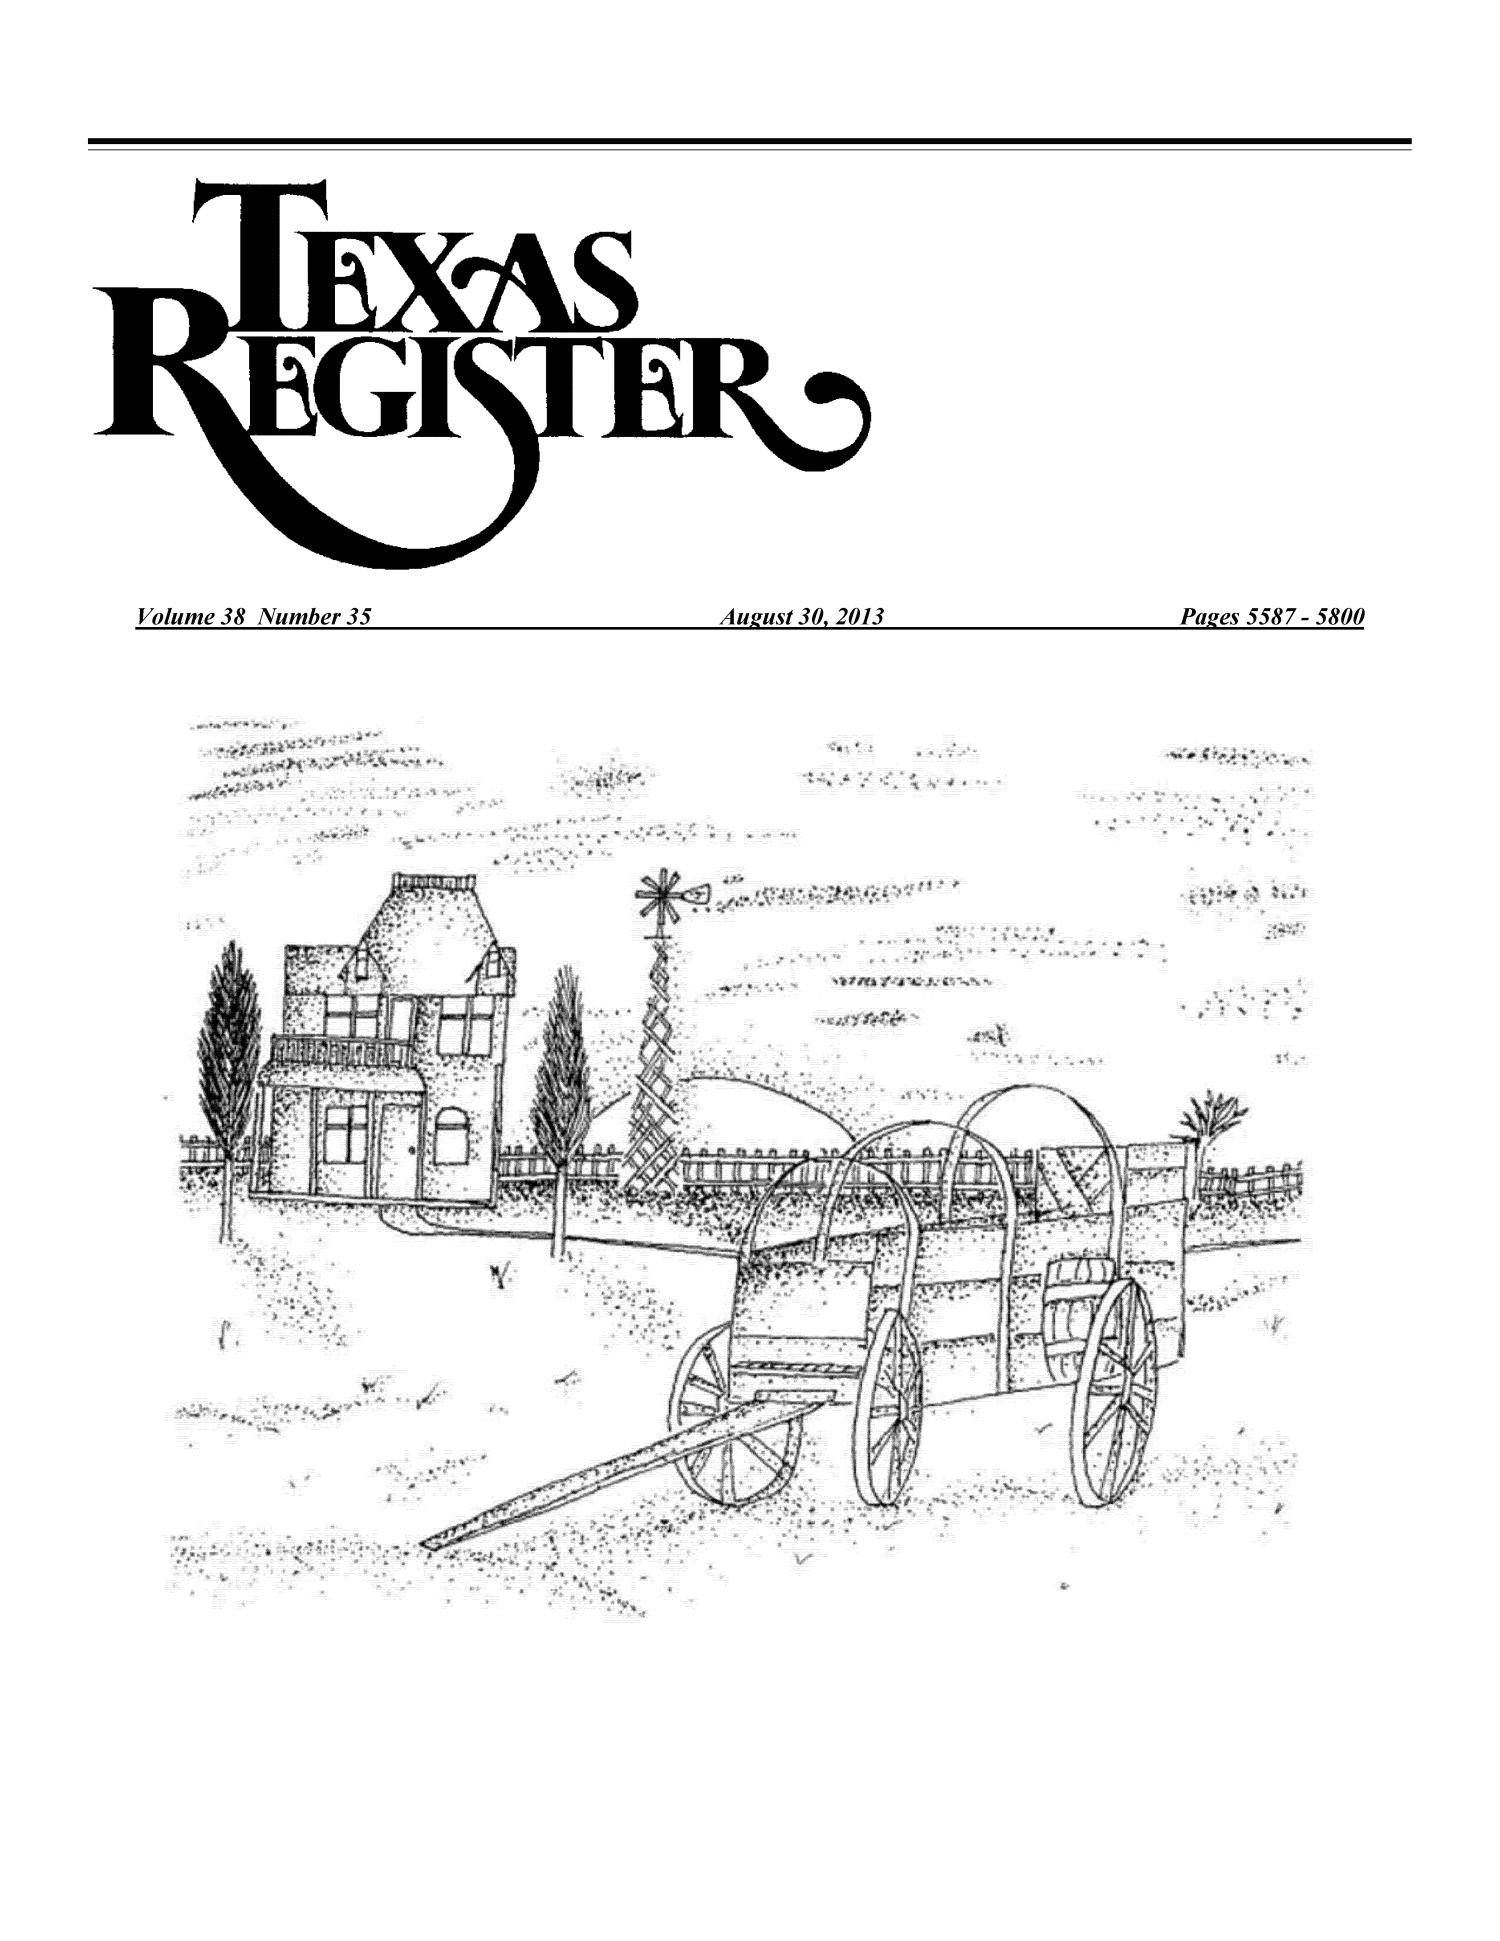 Texas Register, Volume 38, Number 35, Pages 5587-5800, August 30, 2013                                                                                                      Title Page